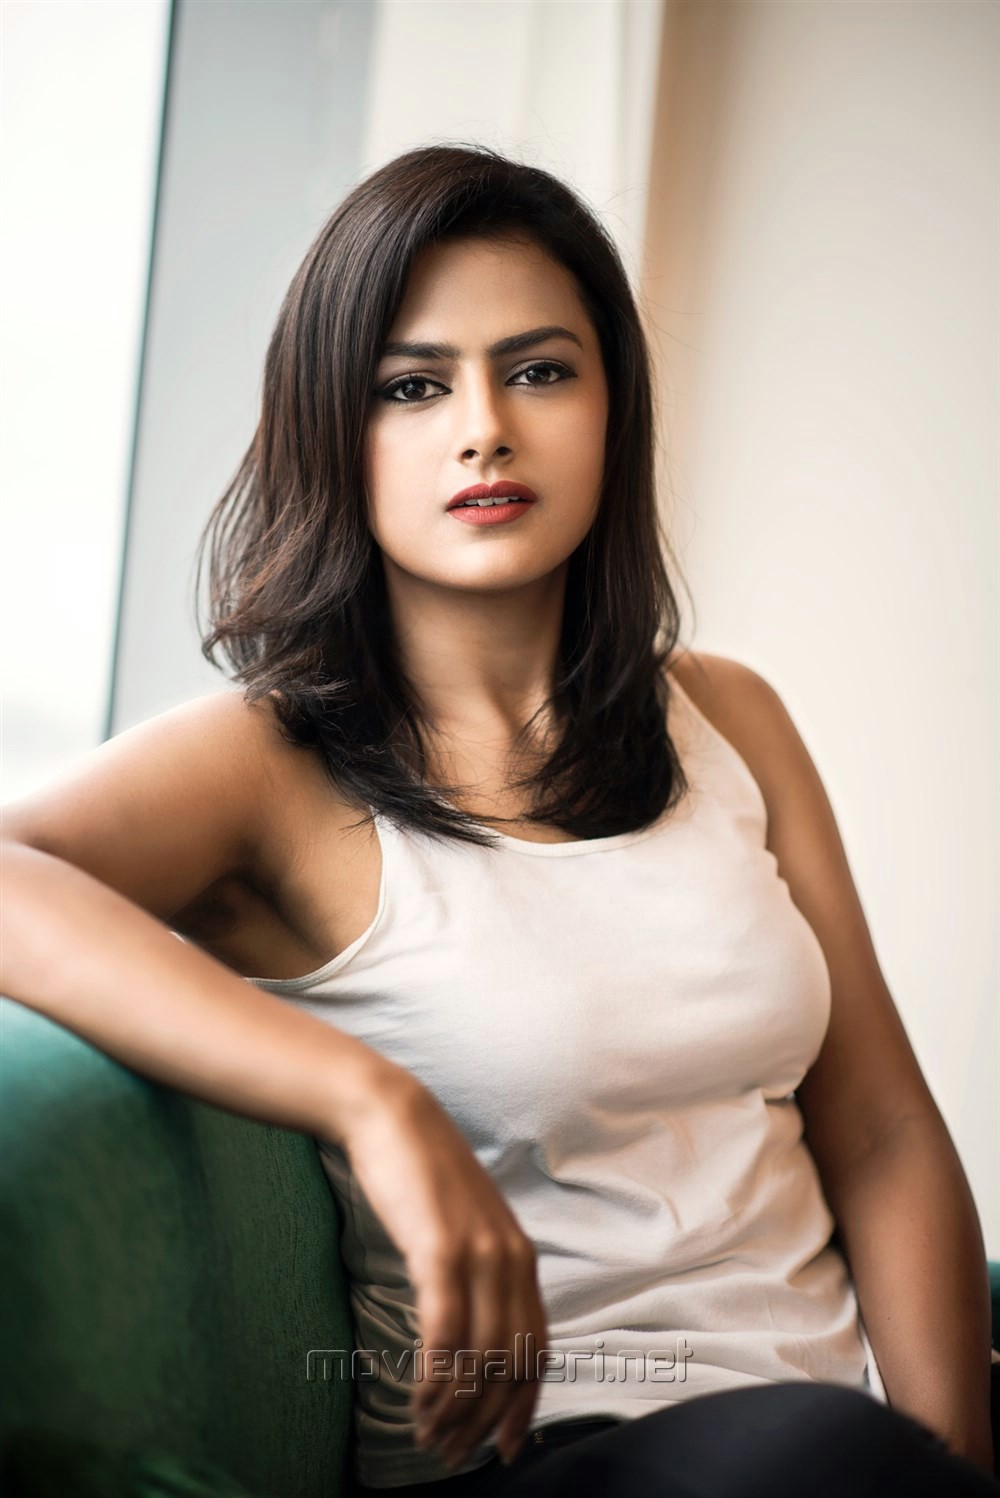 Tamil Actress Shraddha Srinath Hot Photoshoot Pics